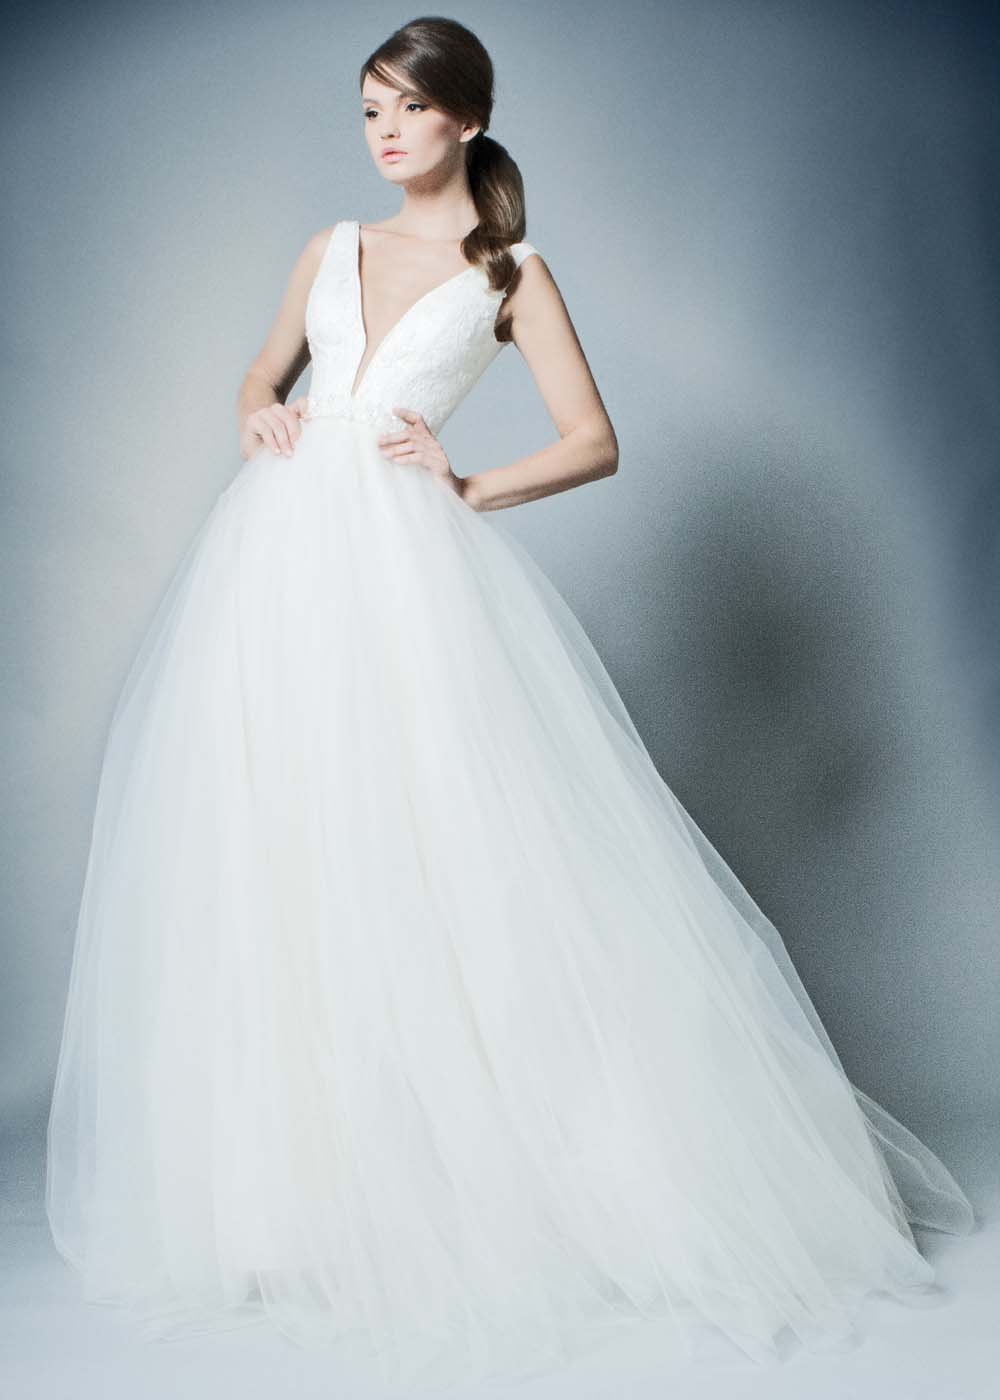 Best Wedding Dresses Debenhams Sale Contemporary - Wedding Ideas ...